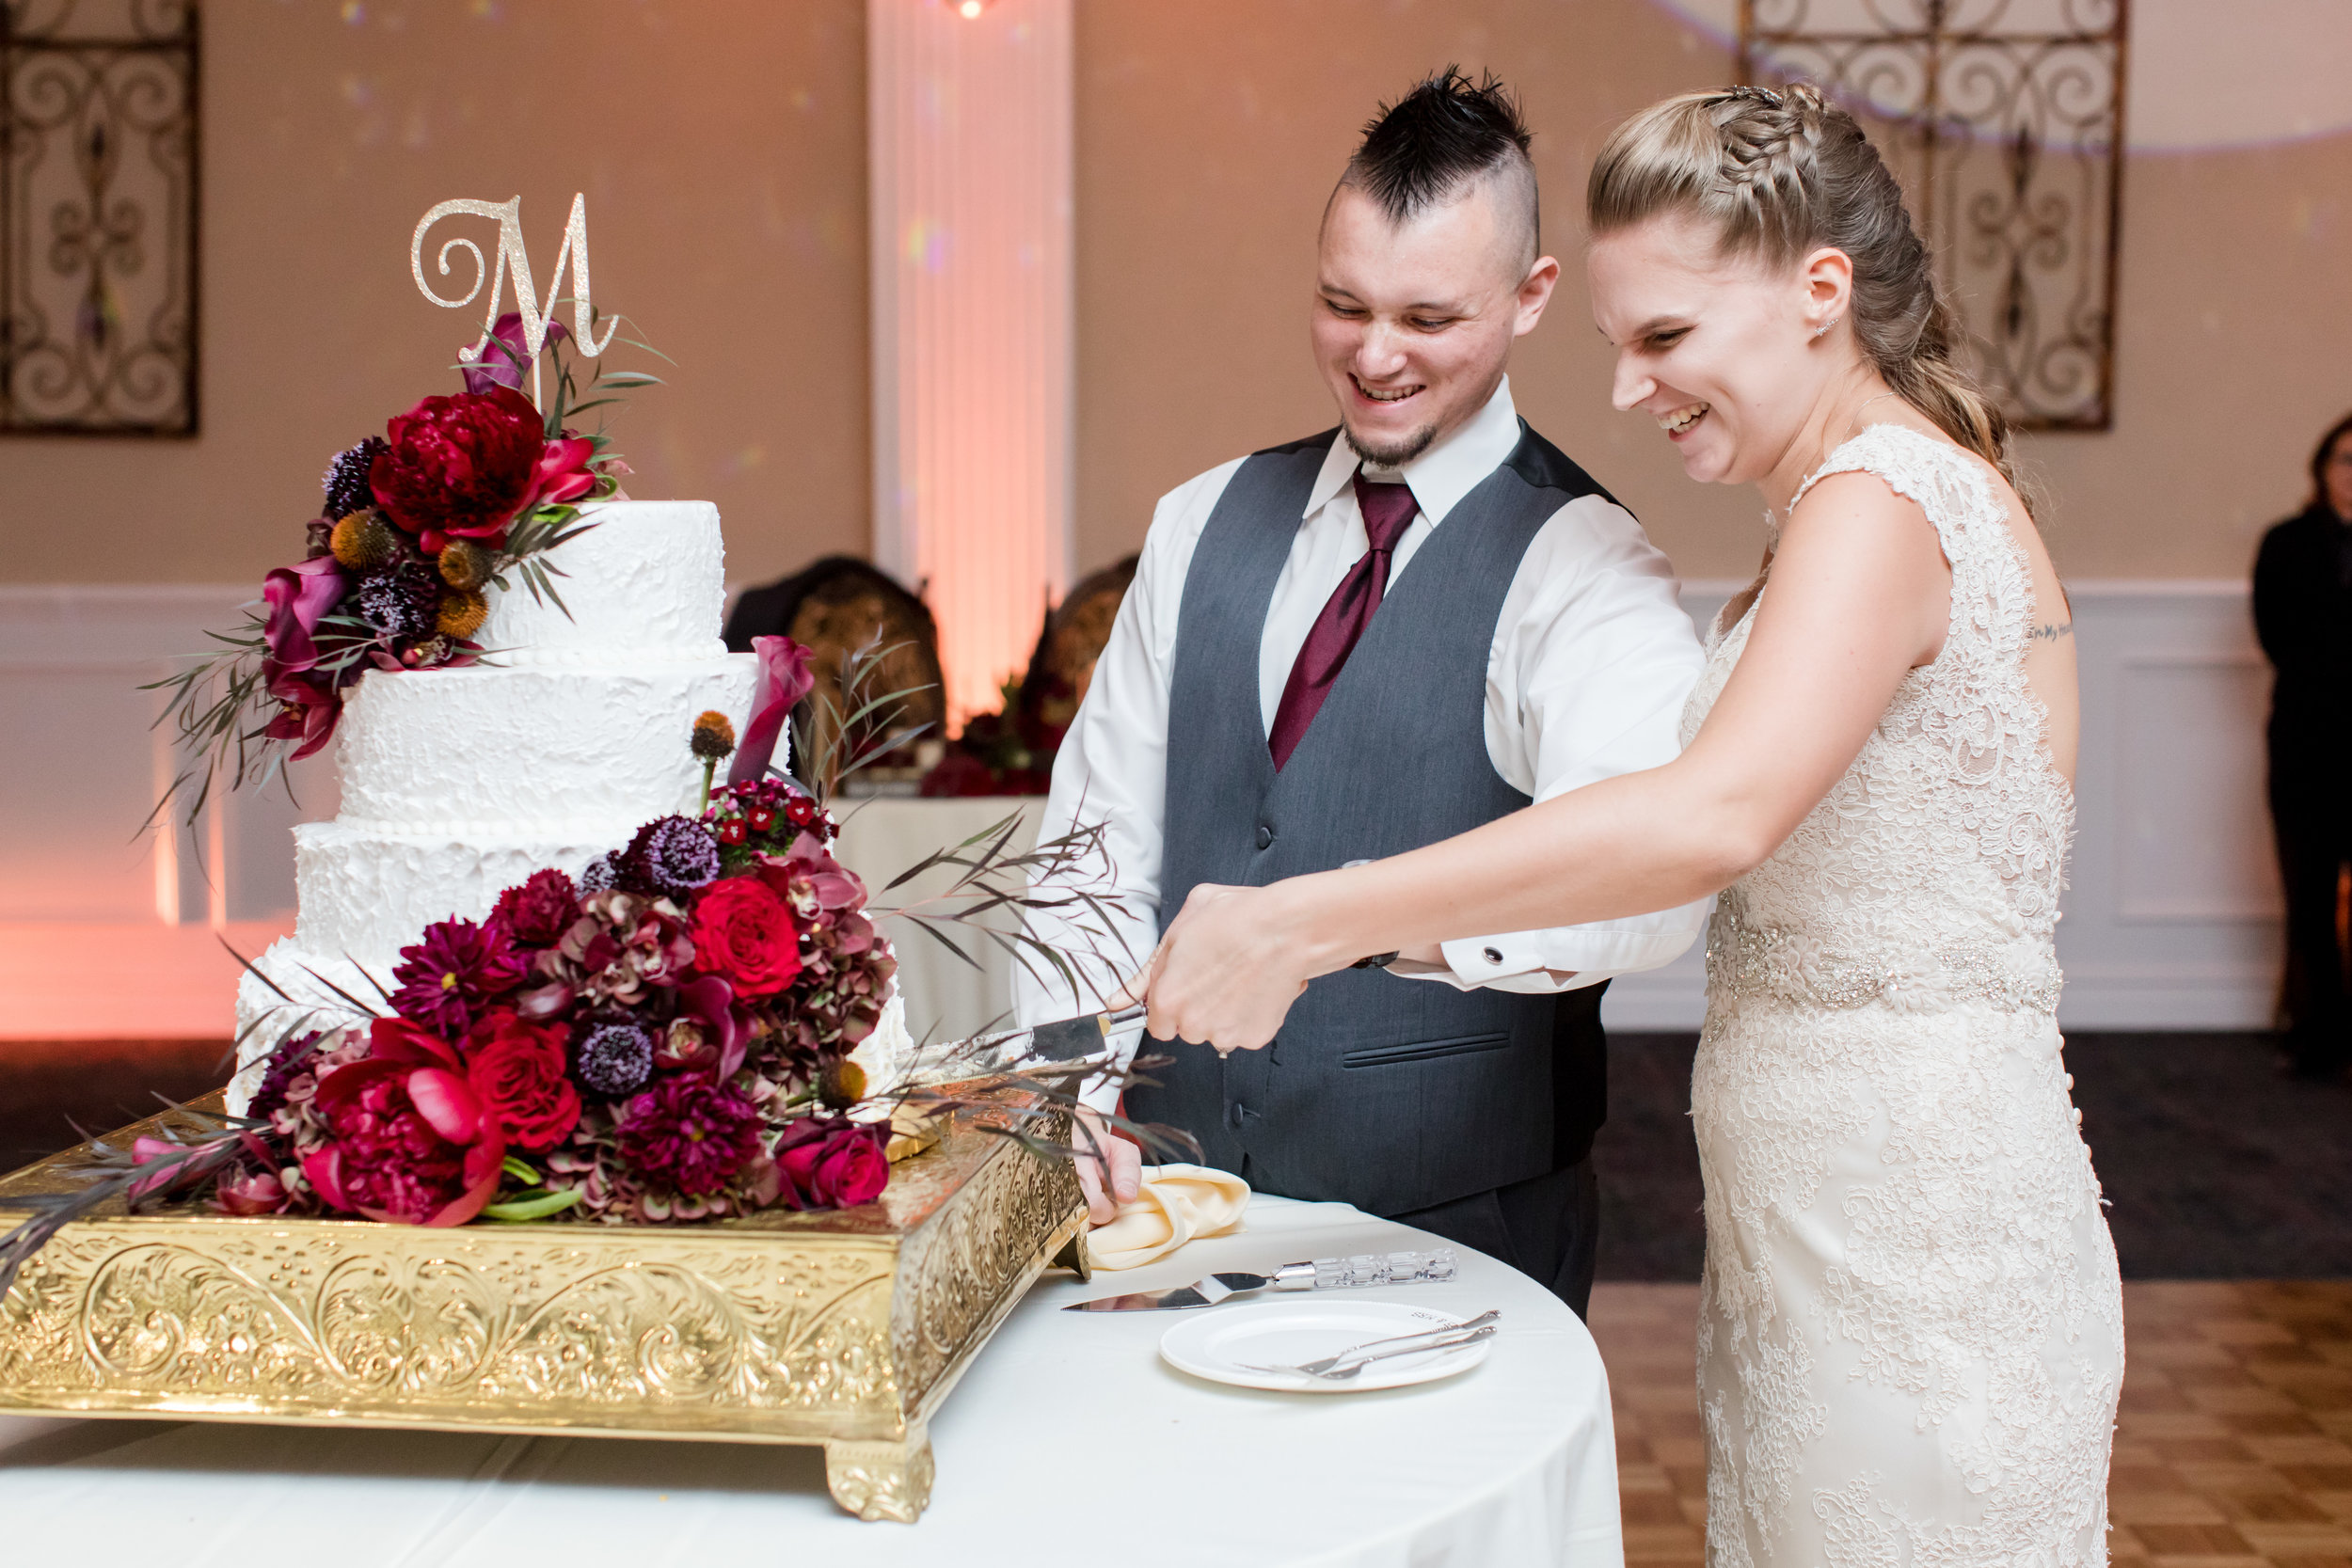 White wedding cake with dark fall flowers and gold glitter cake topper